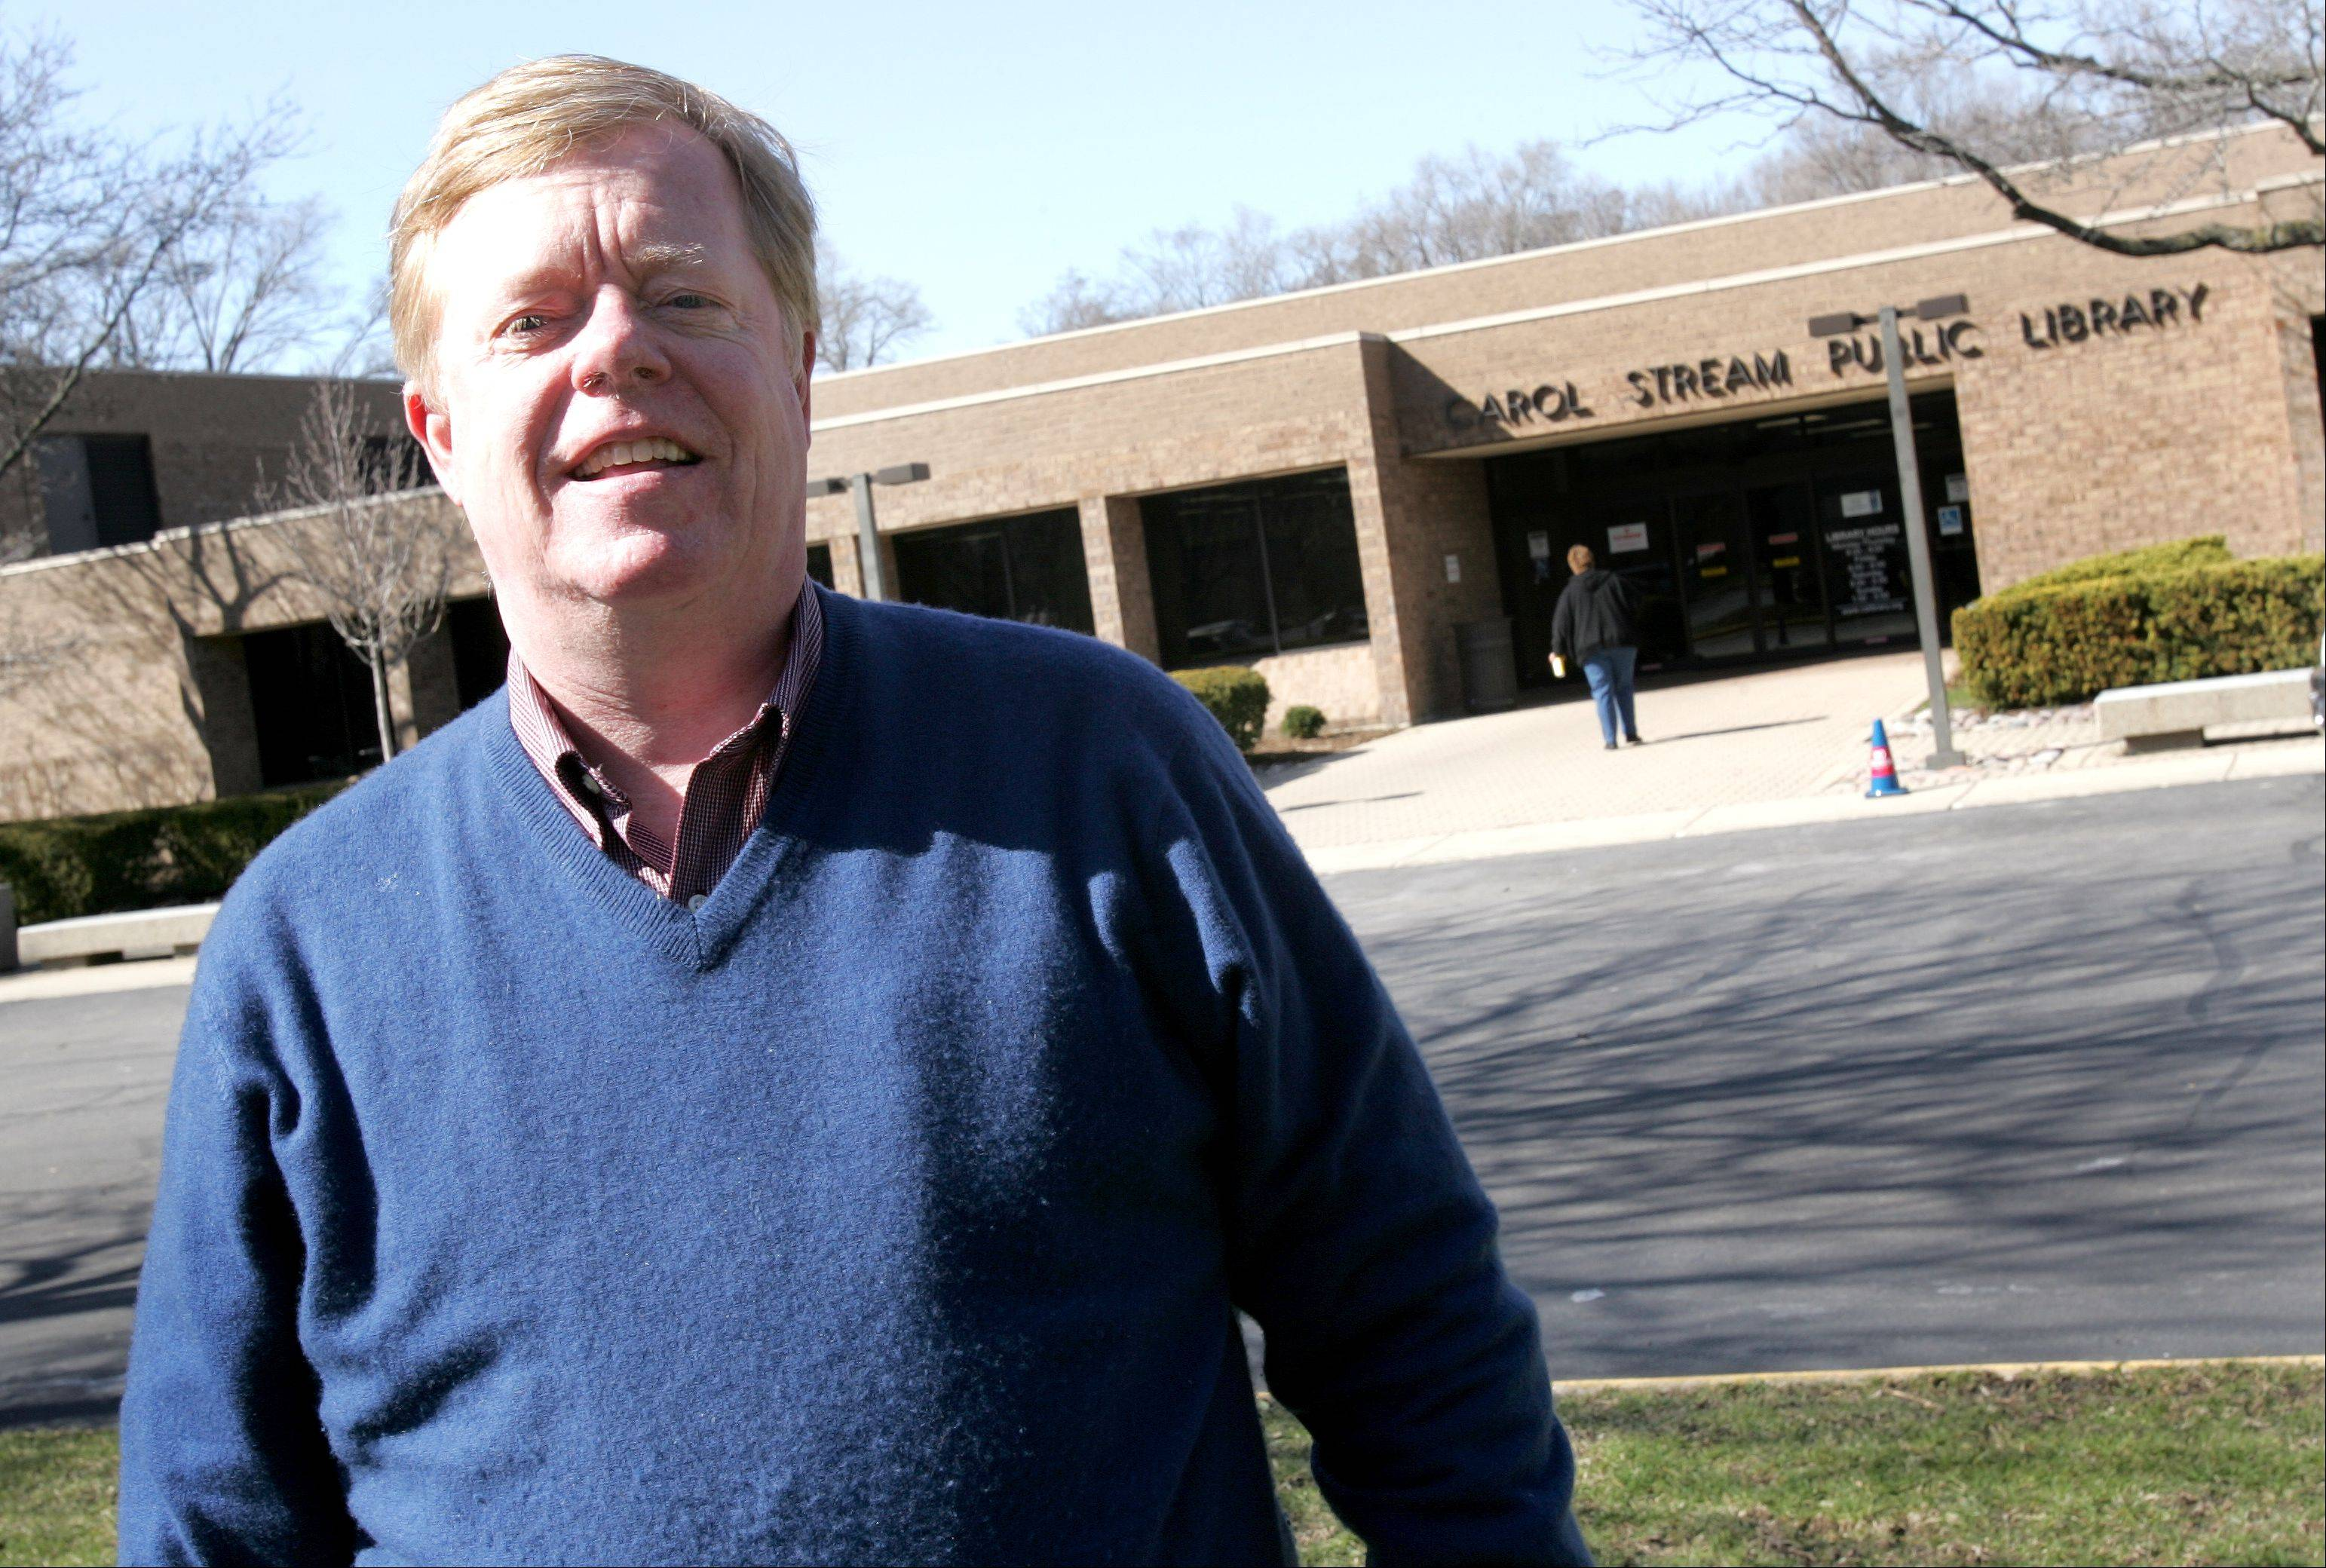 Carol Stream library seeks two trustees